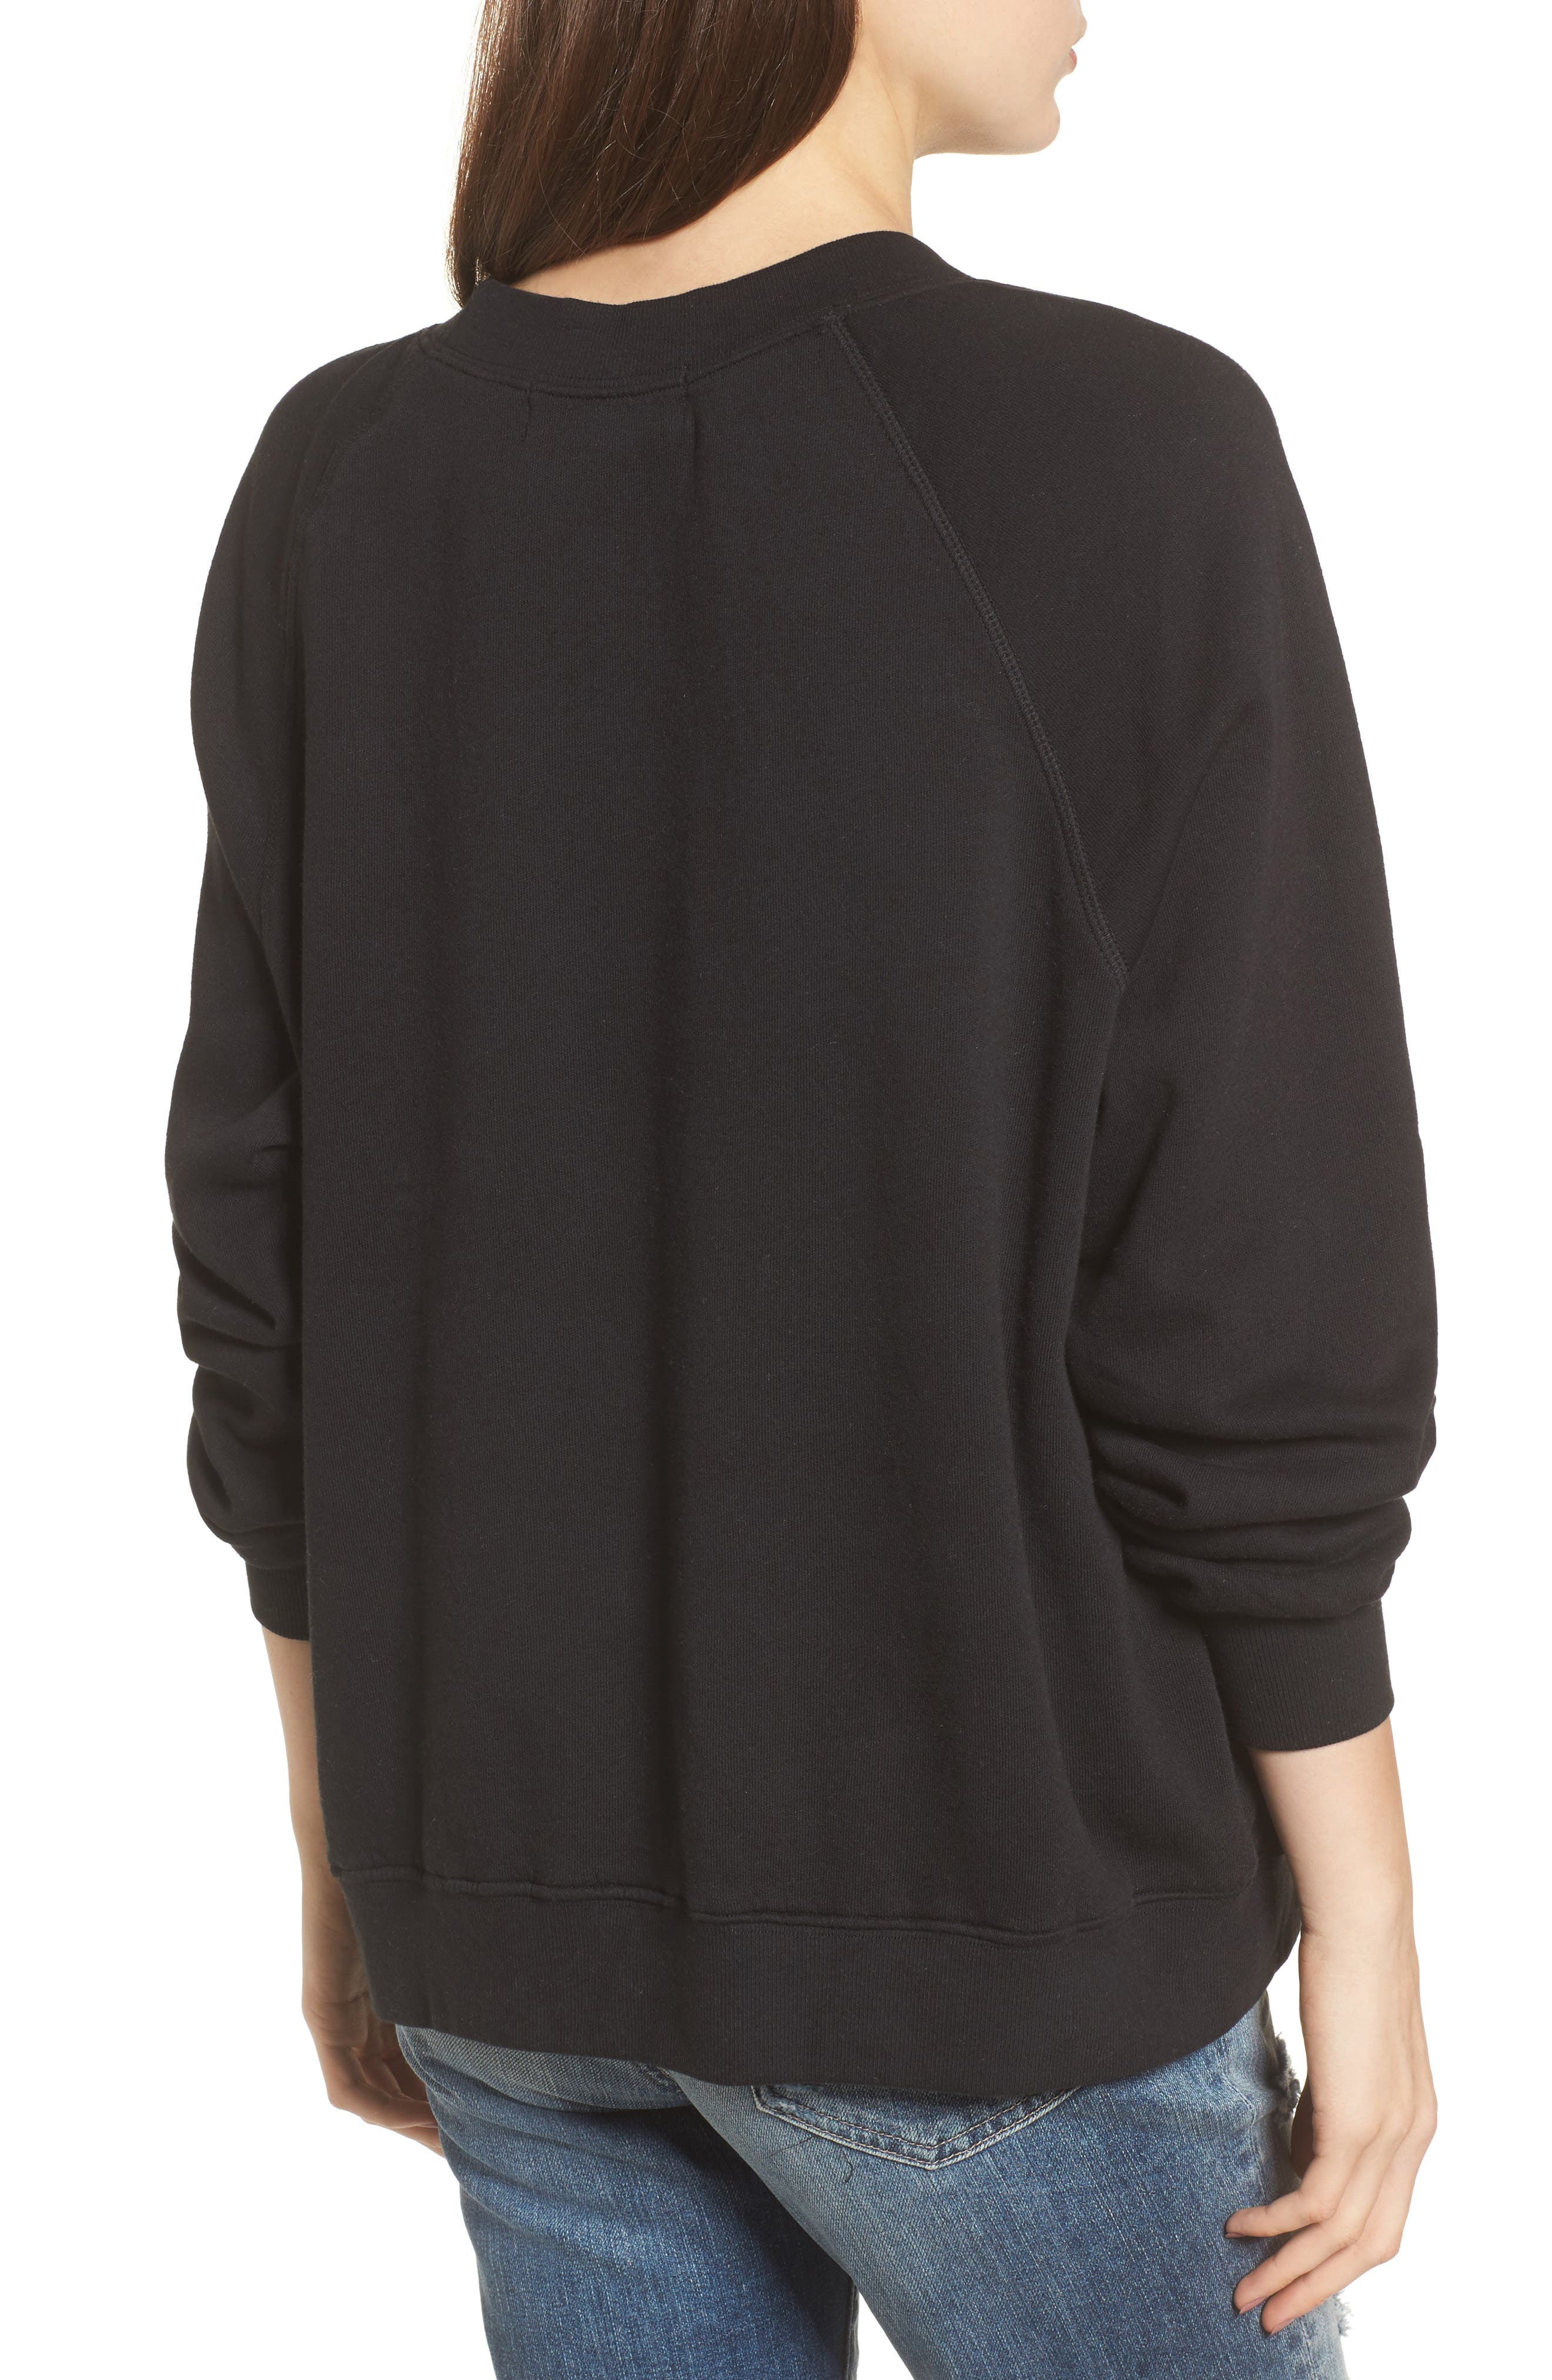 Wino - Sommers Sweatshirt,                             Alternate thumbnail 2, color,                             001